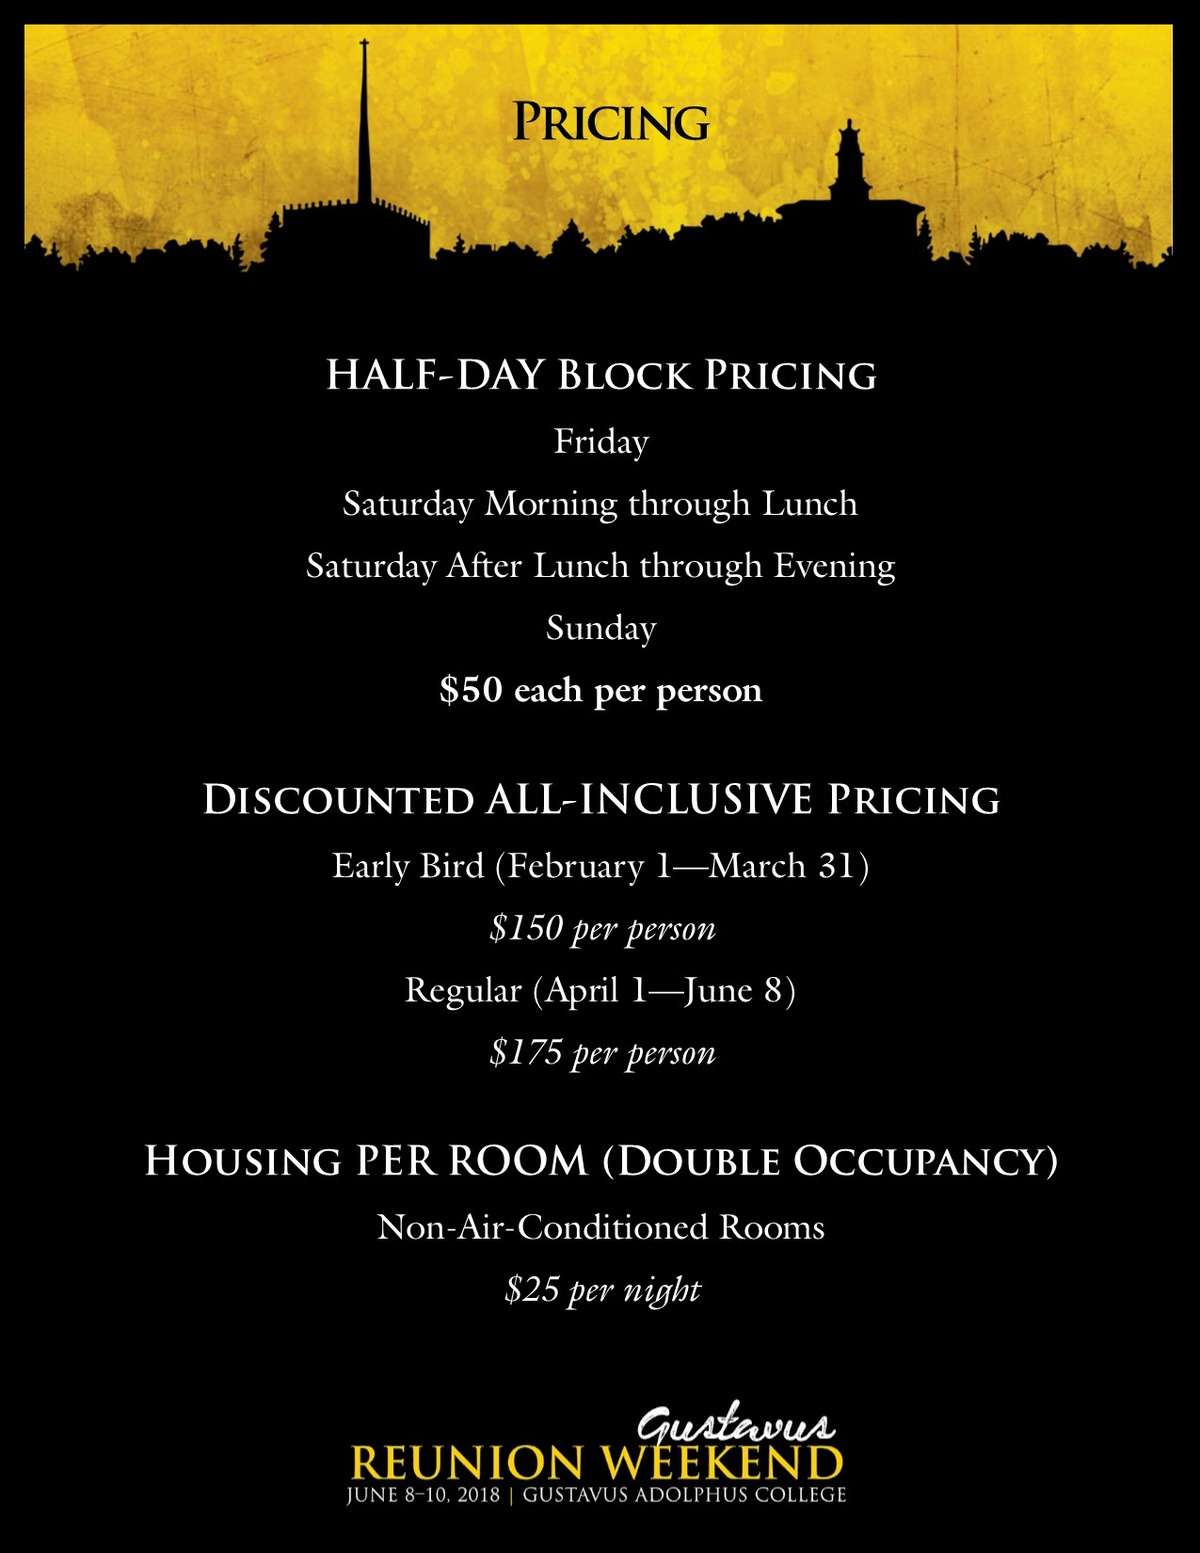 Class specific Reunion Weekend pricing